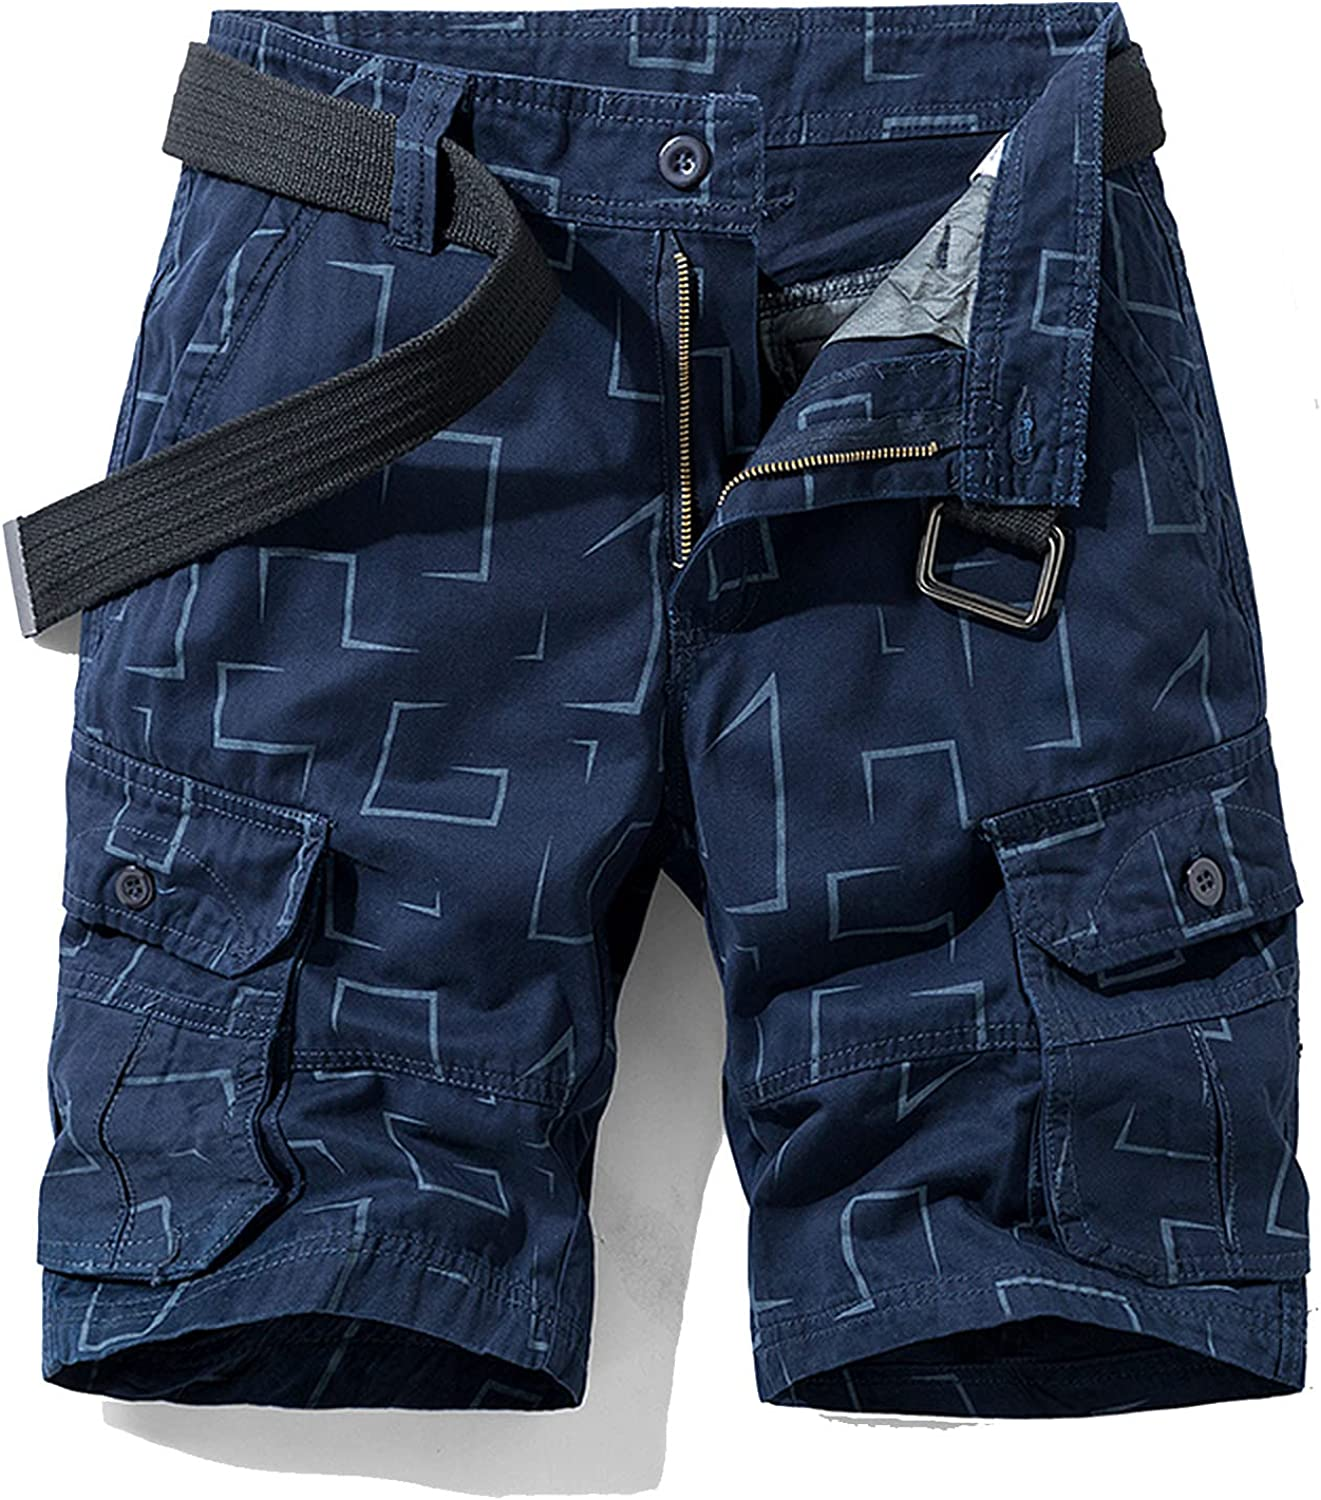 B dressy New Summer Cargo Shorts Men Camouflage Cotton Khaki Loose Casual Outwear Overalls-Blue-1-30